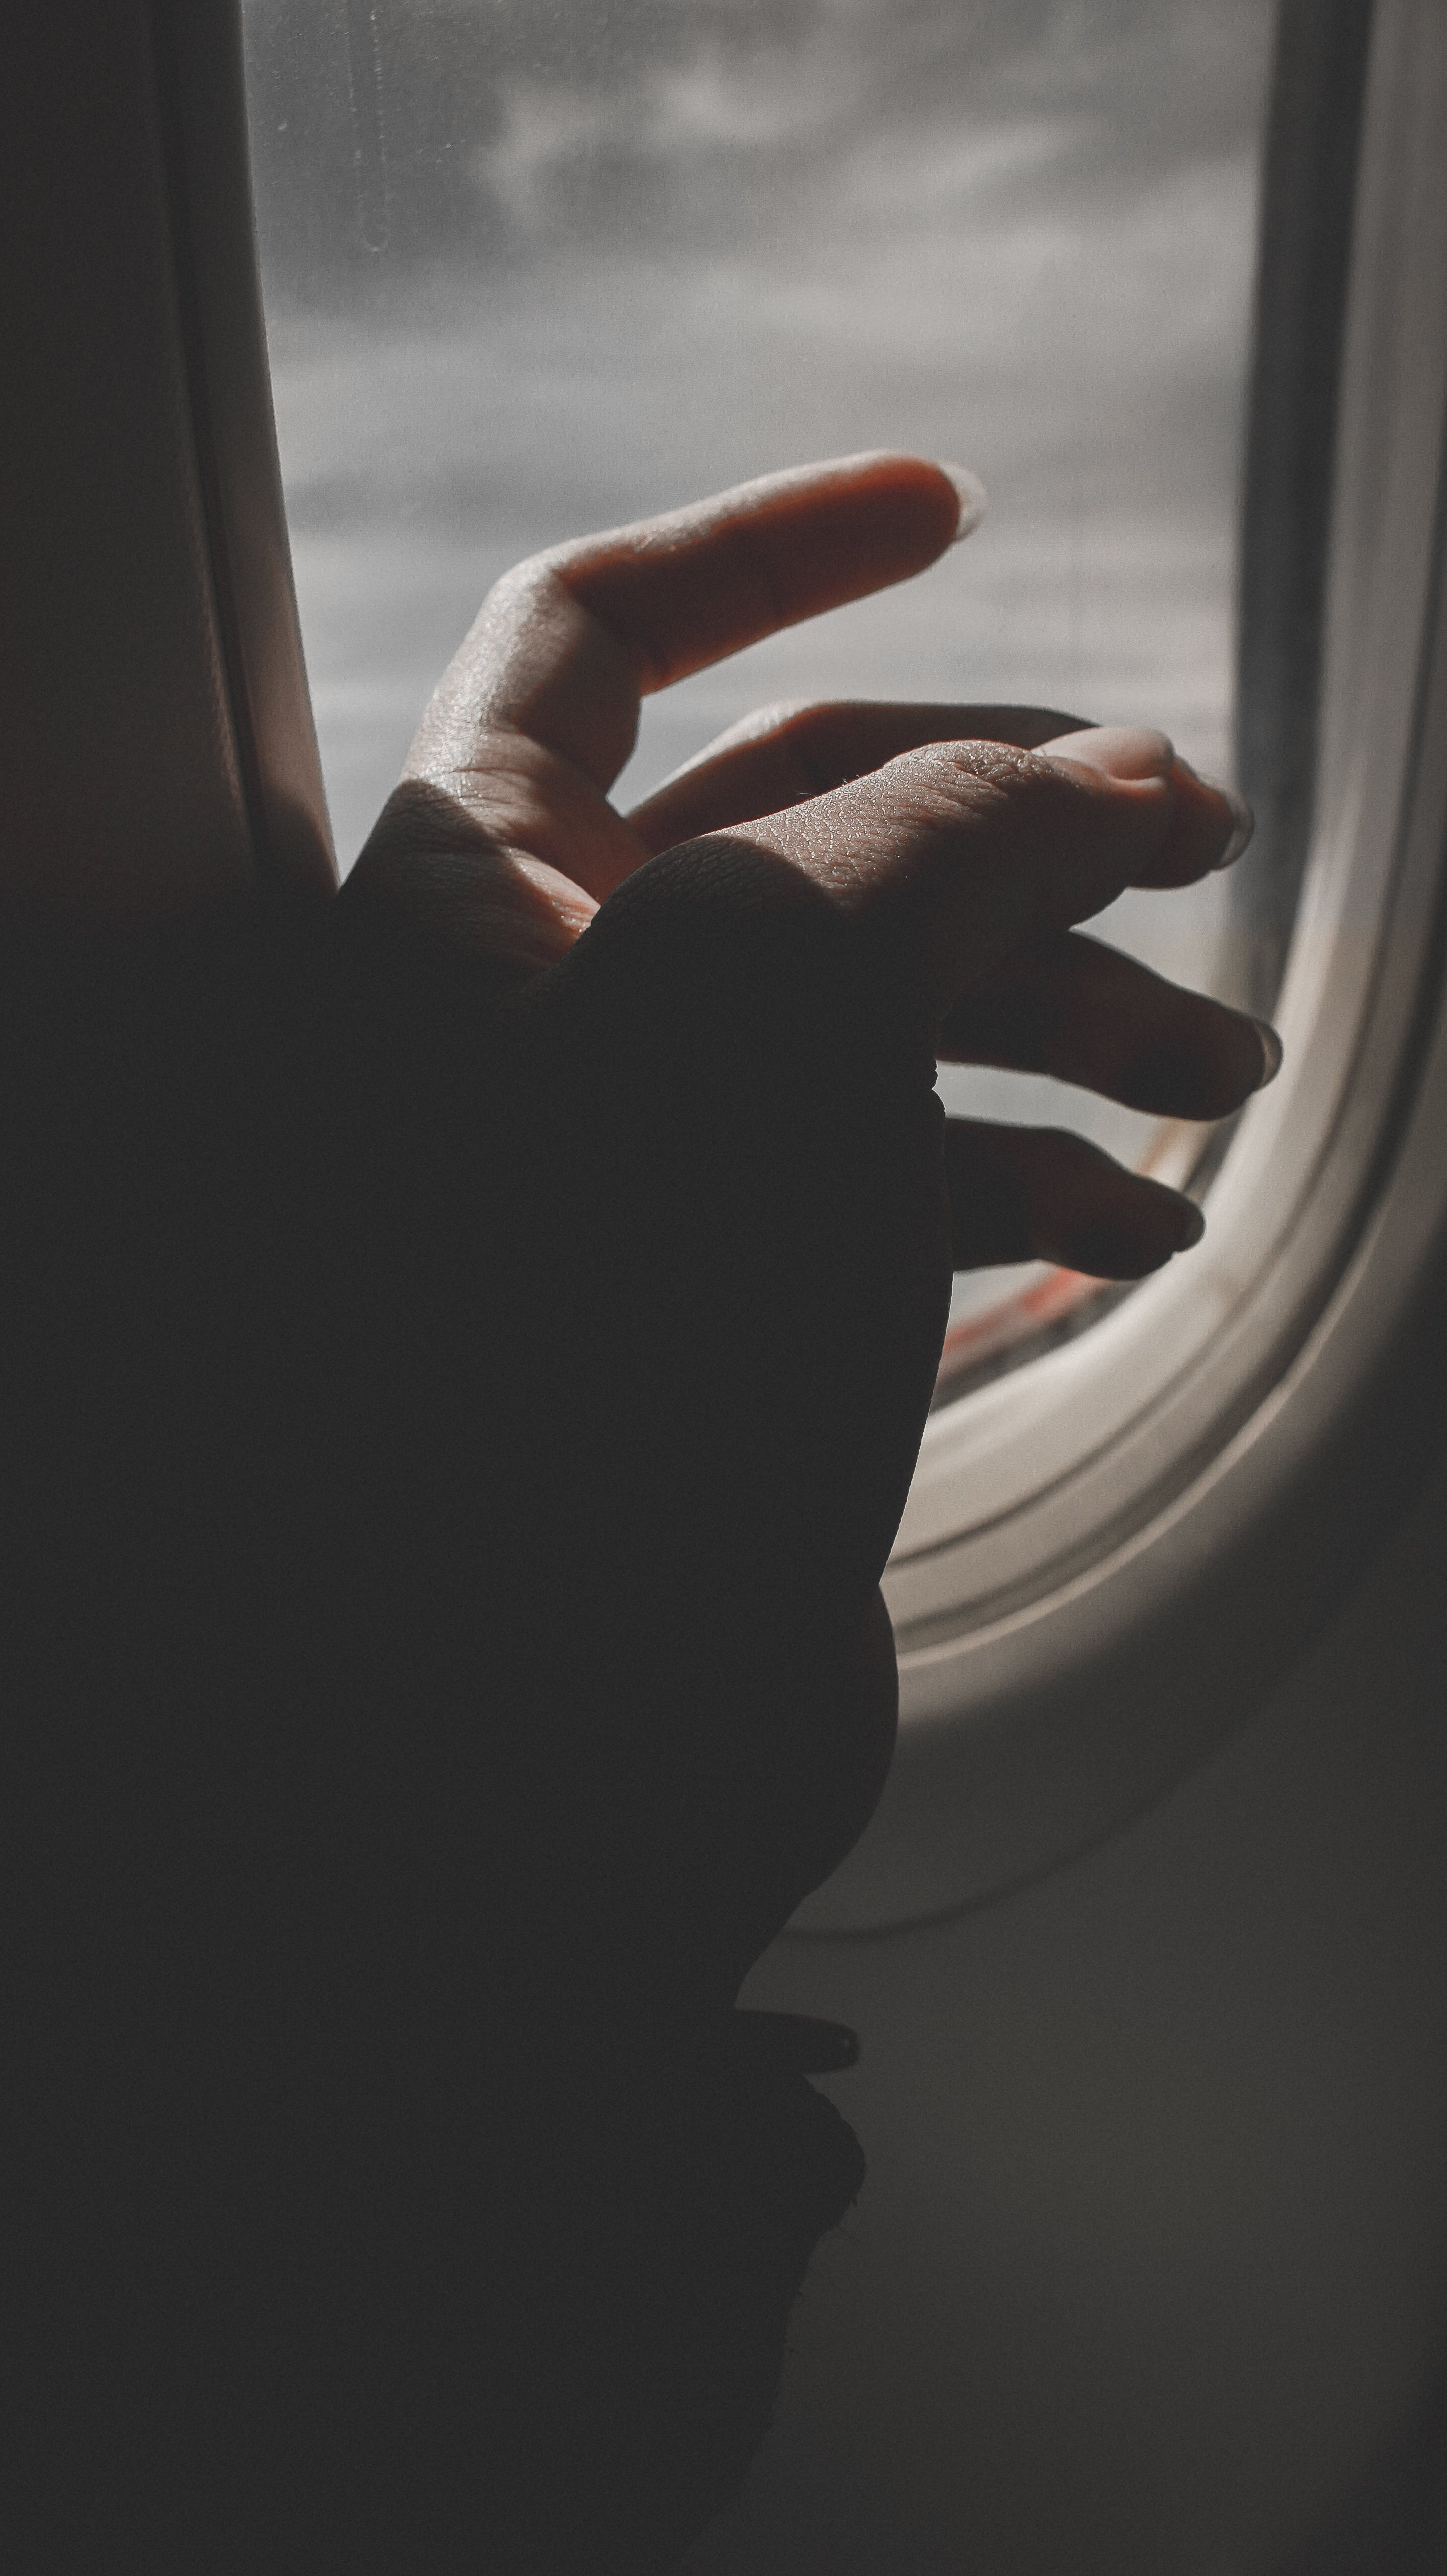 Hand By Airplane Window